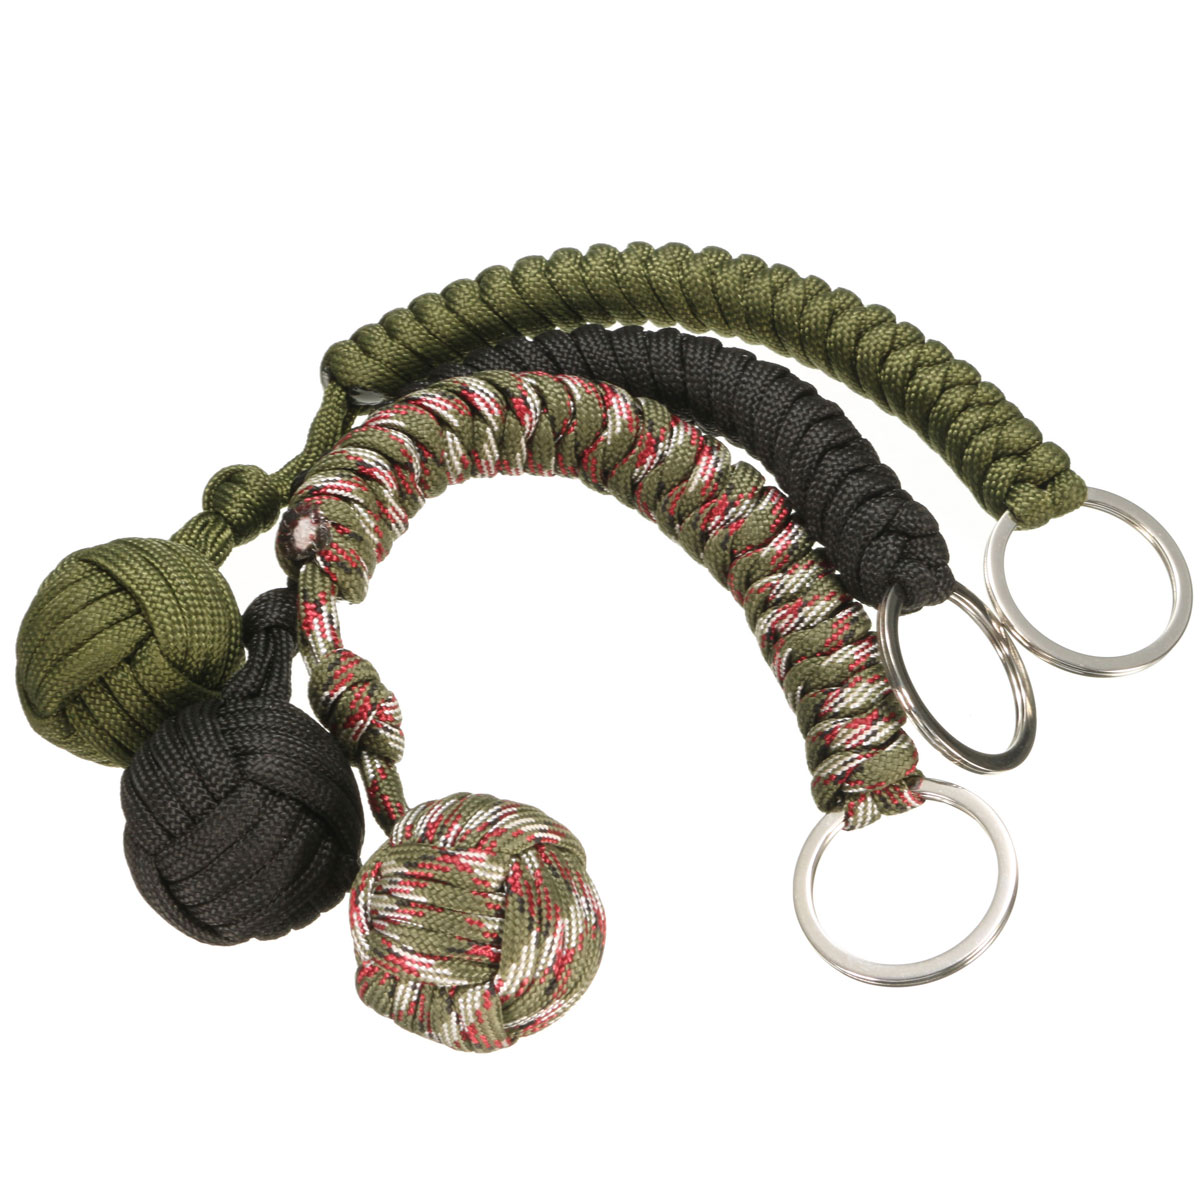 Image result for Monkey Fist Survival Key Chain tool